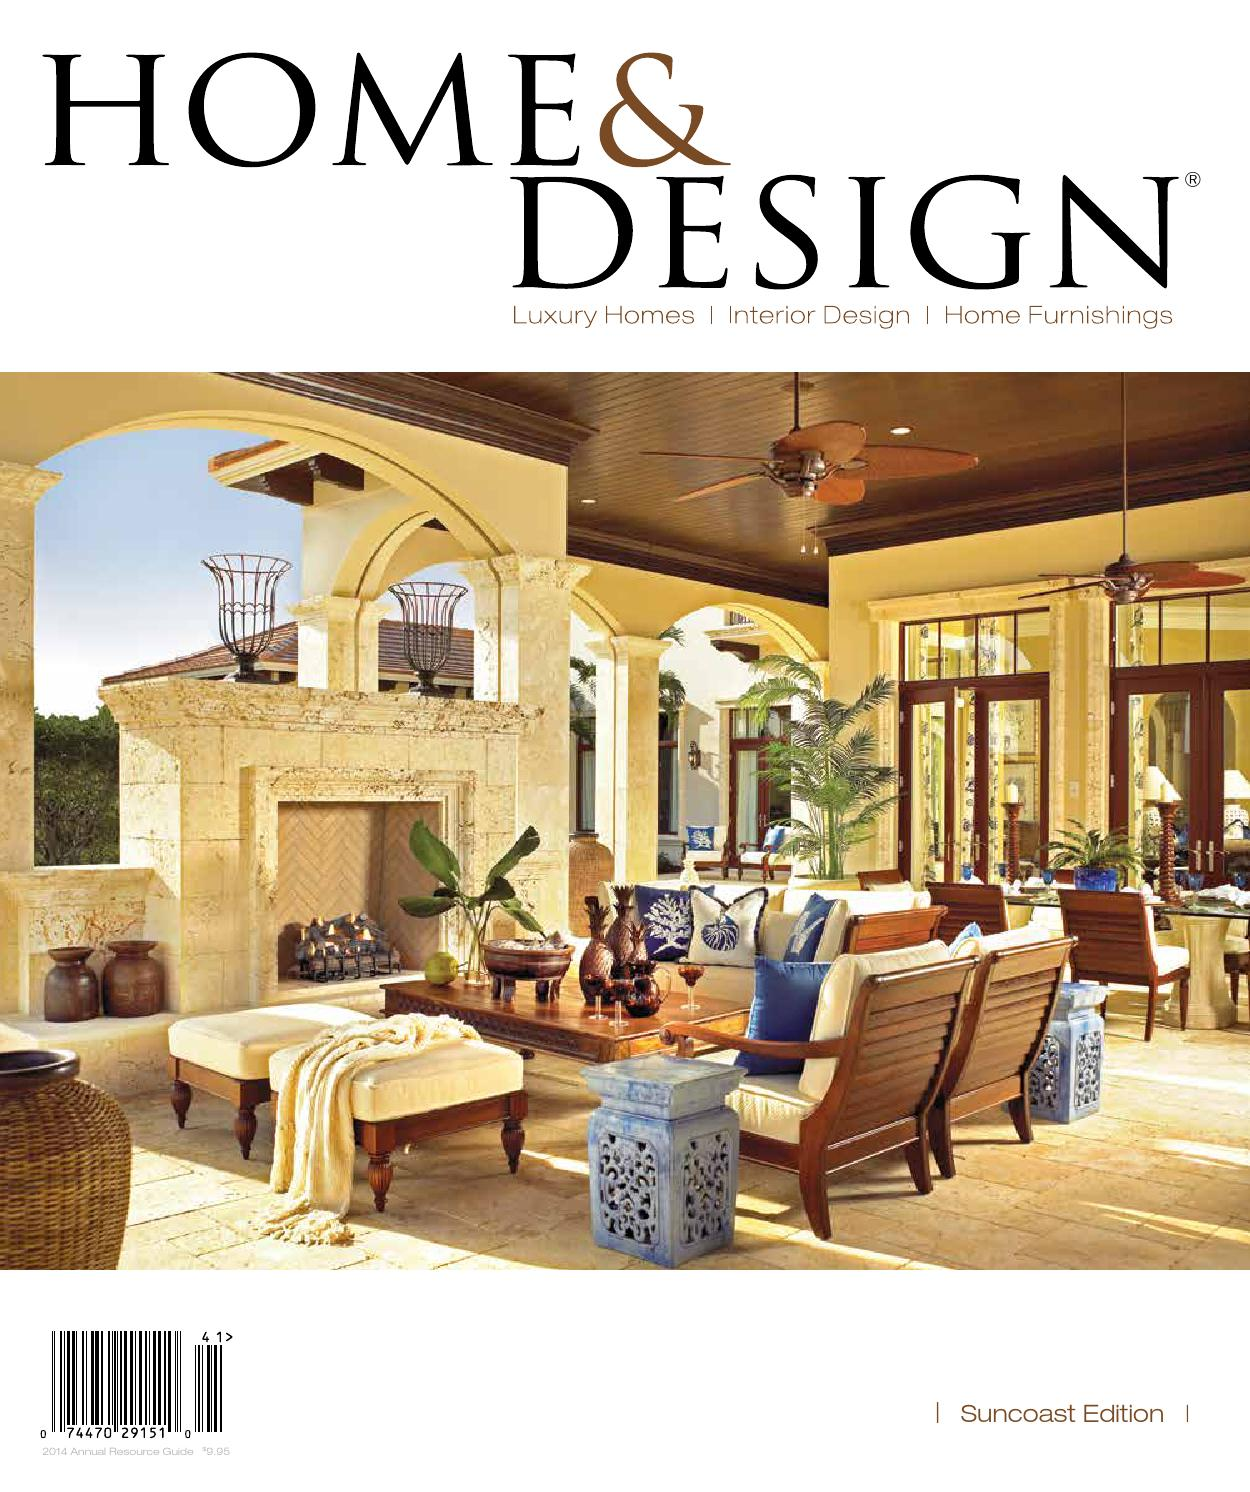 Home & Design Magazine | Annual Resource Guide 2014 | Suncoast ...